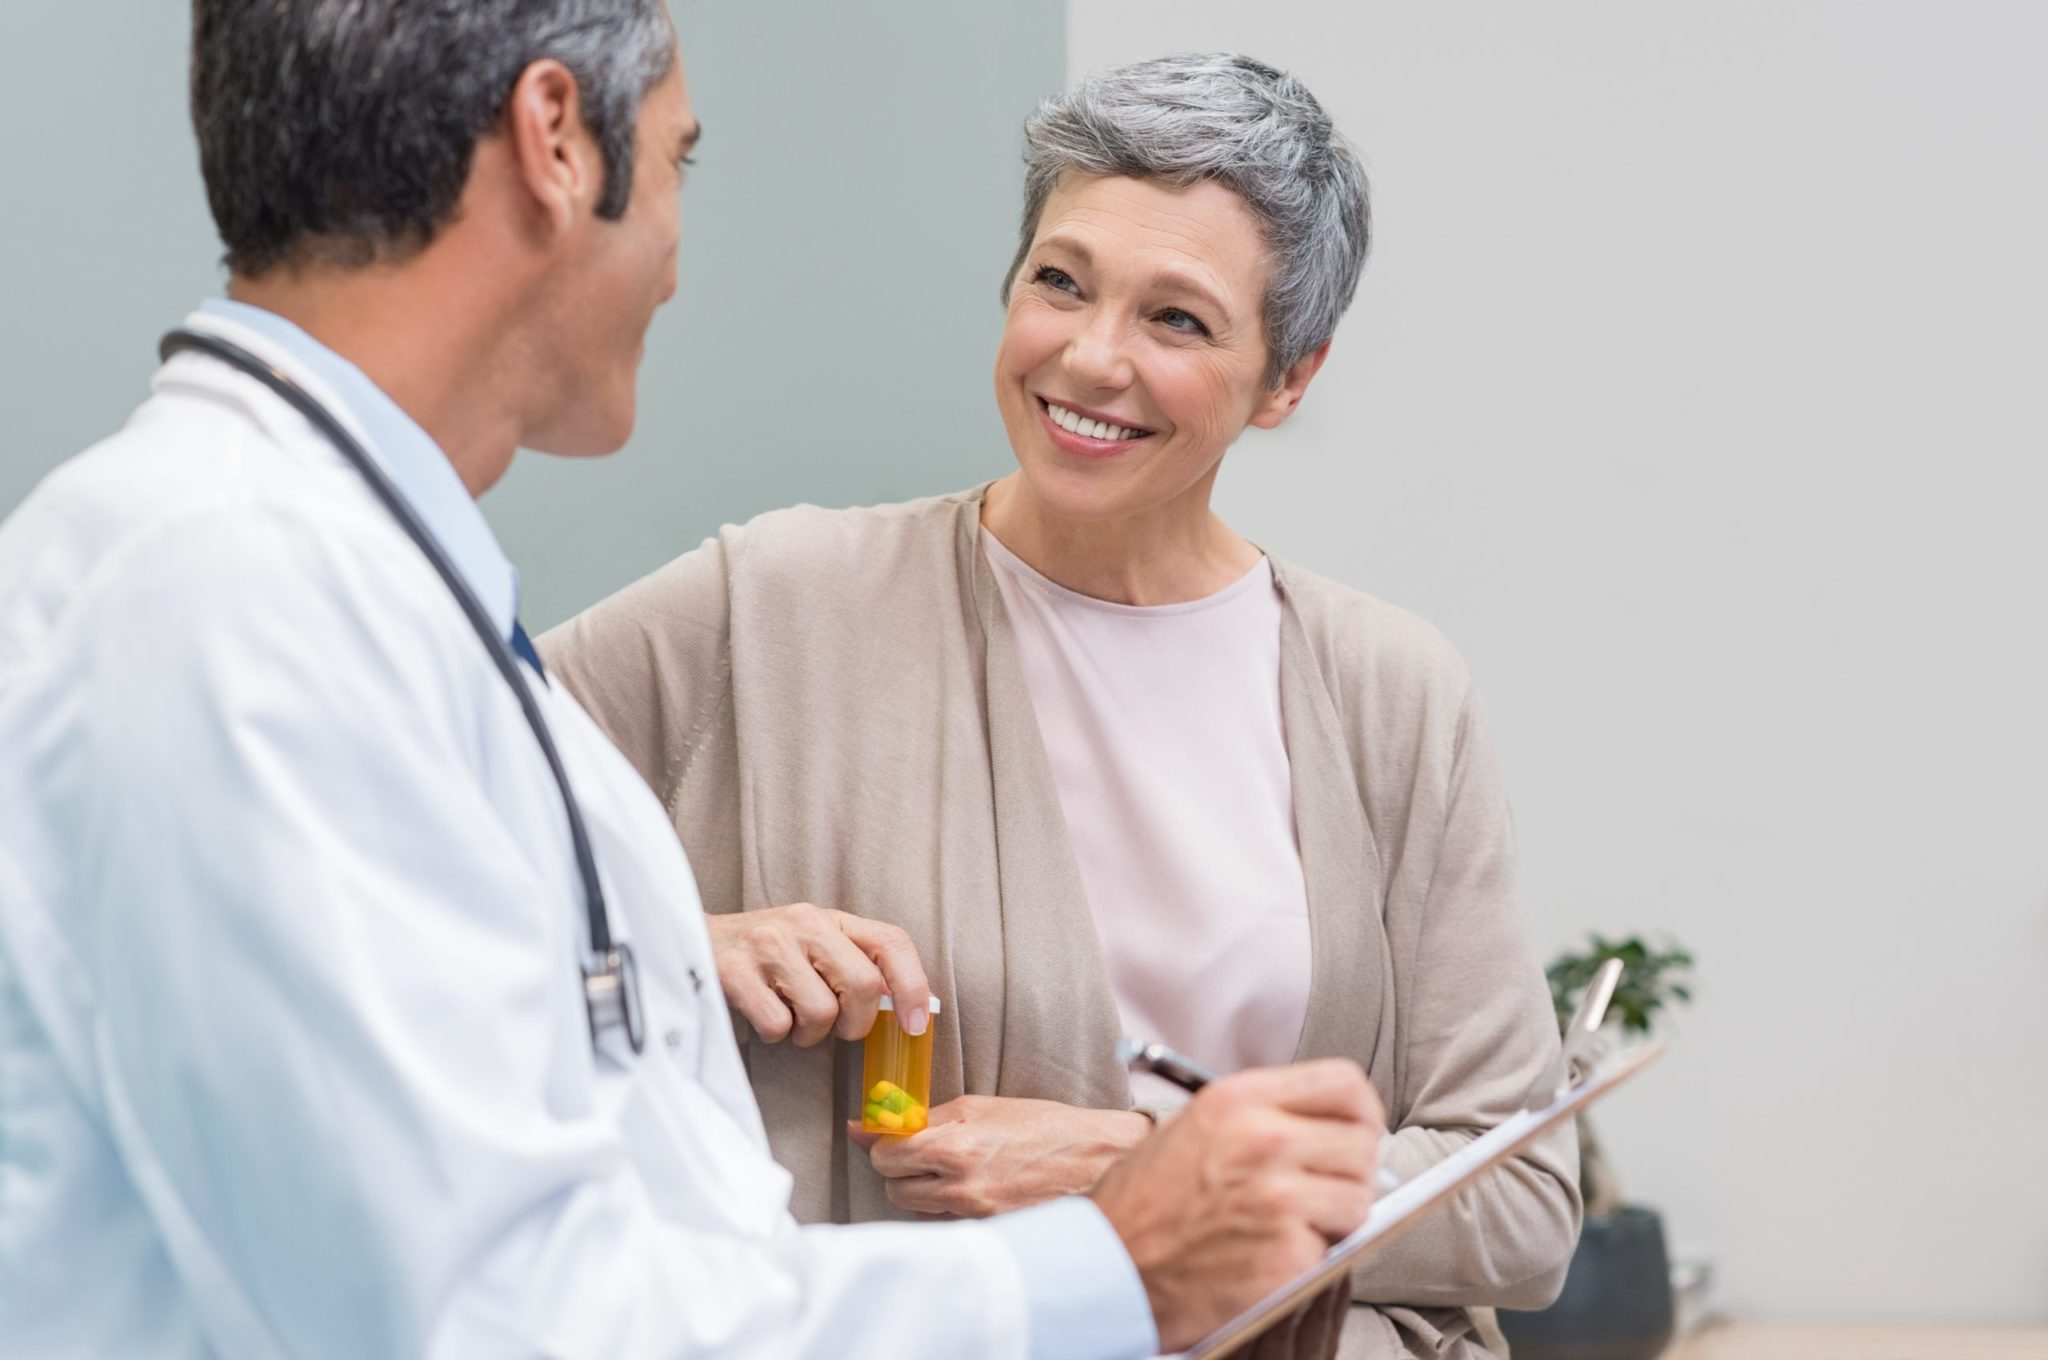 Woman smiling talking to her doctor